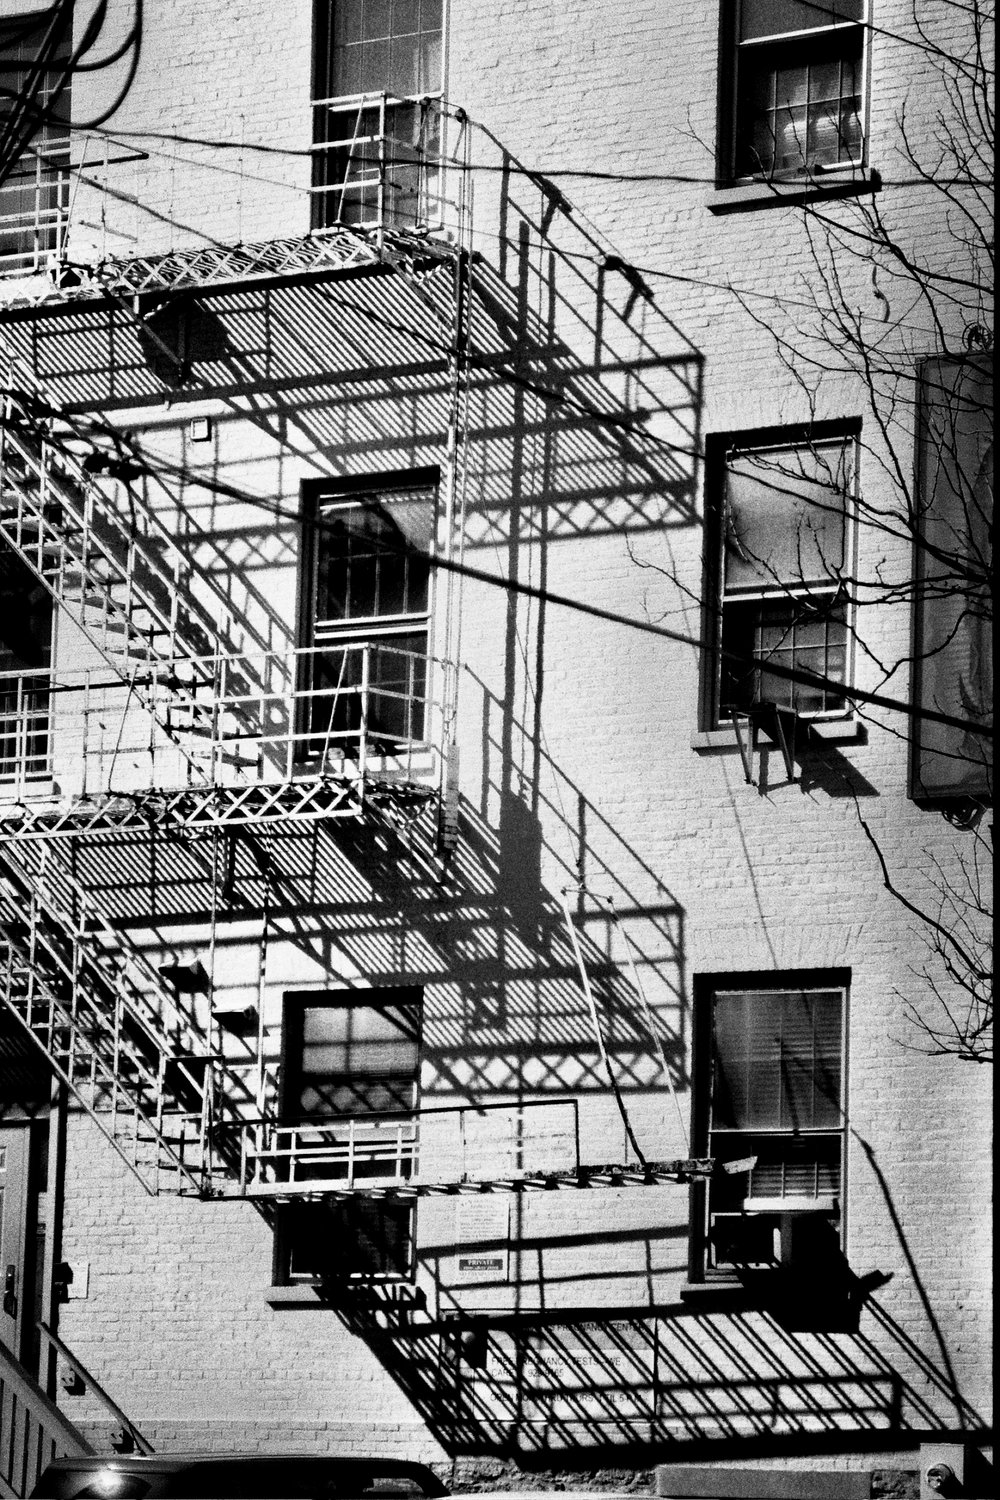 """Fire Escape"" by Brett Sutton, size made to order, film photography (2017), from $85 and up 